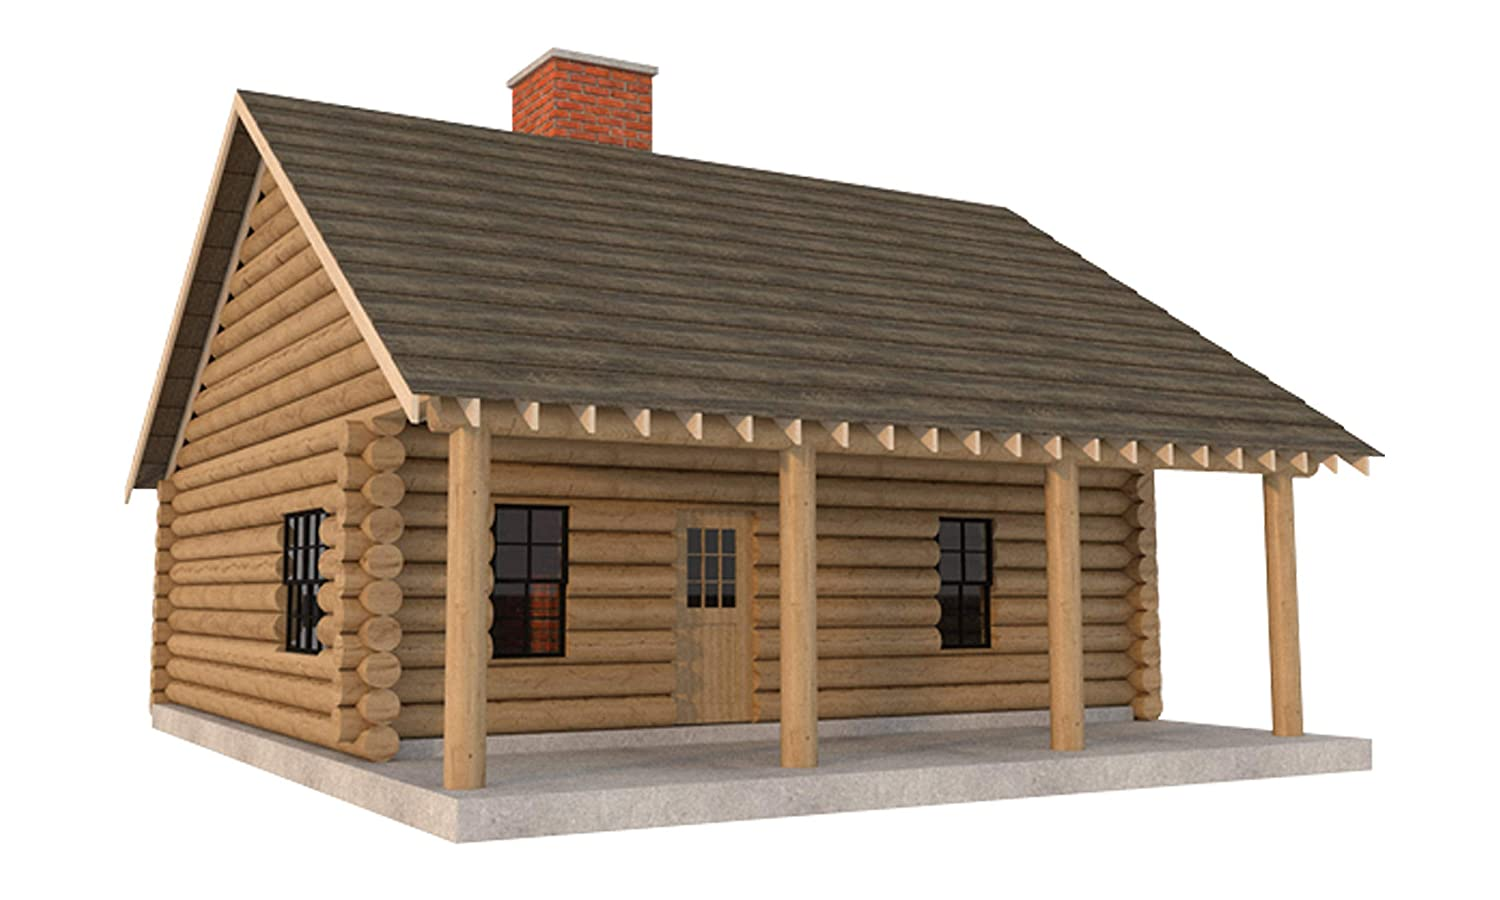 Log Cabin House Plans DIY 2 Bedroom Vacation Home 840 sq/ft Build